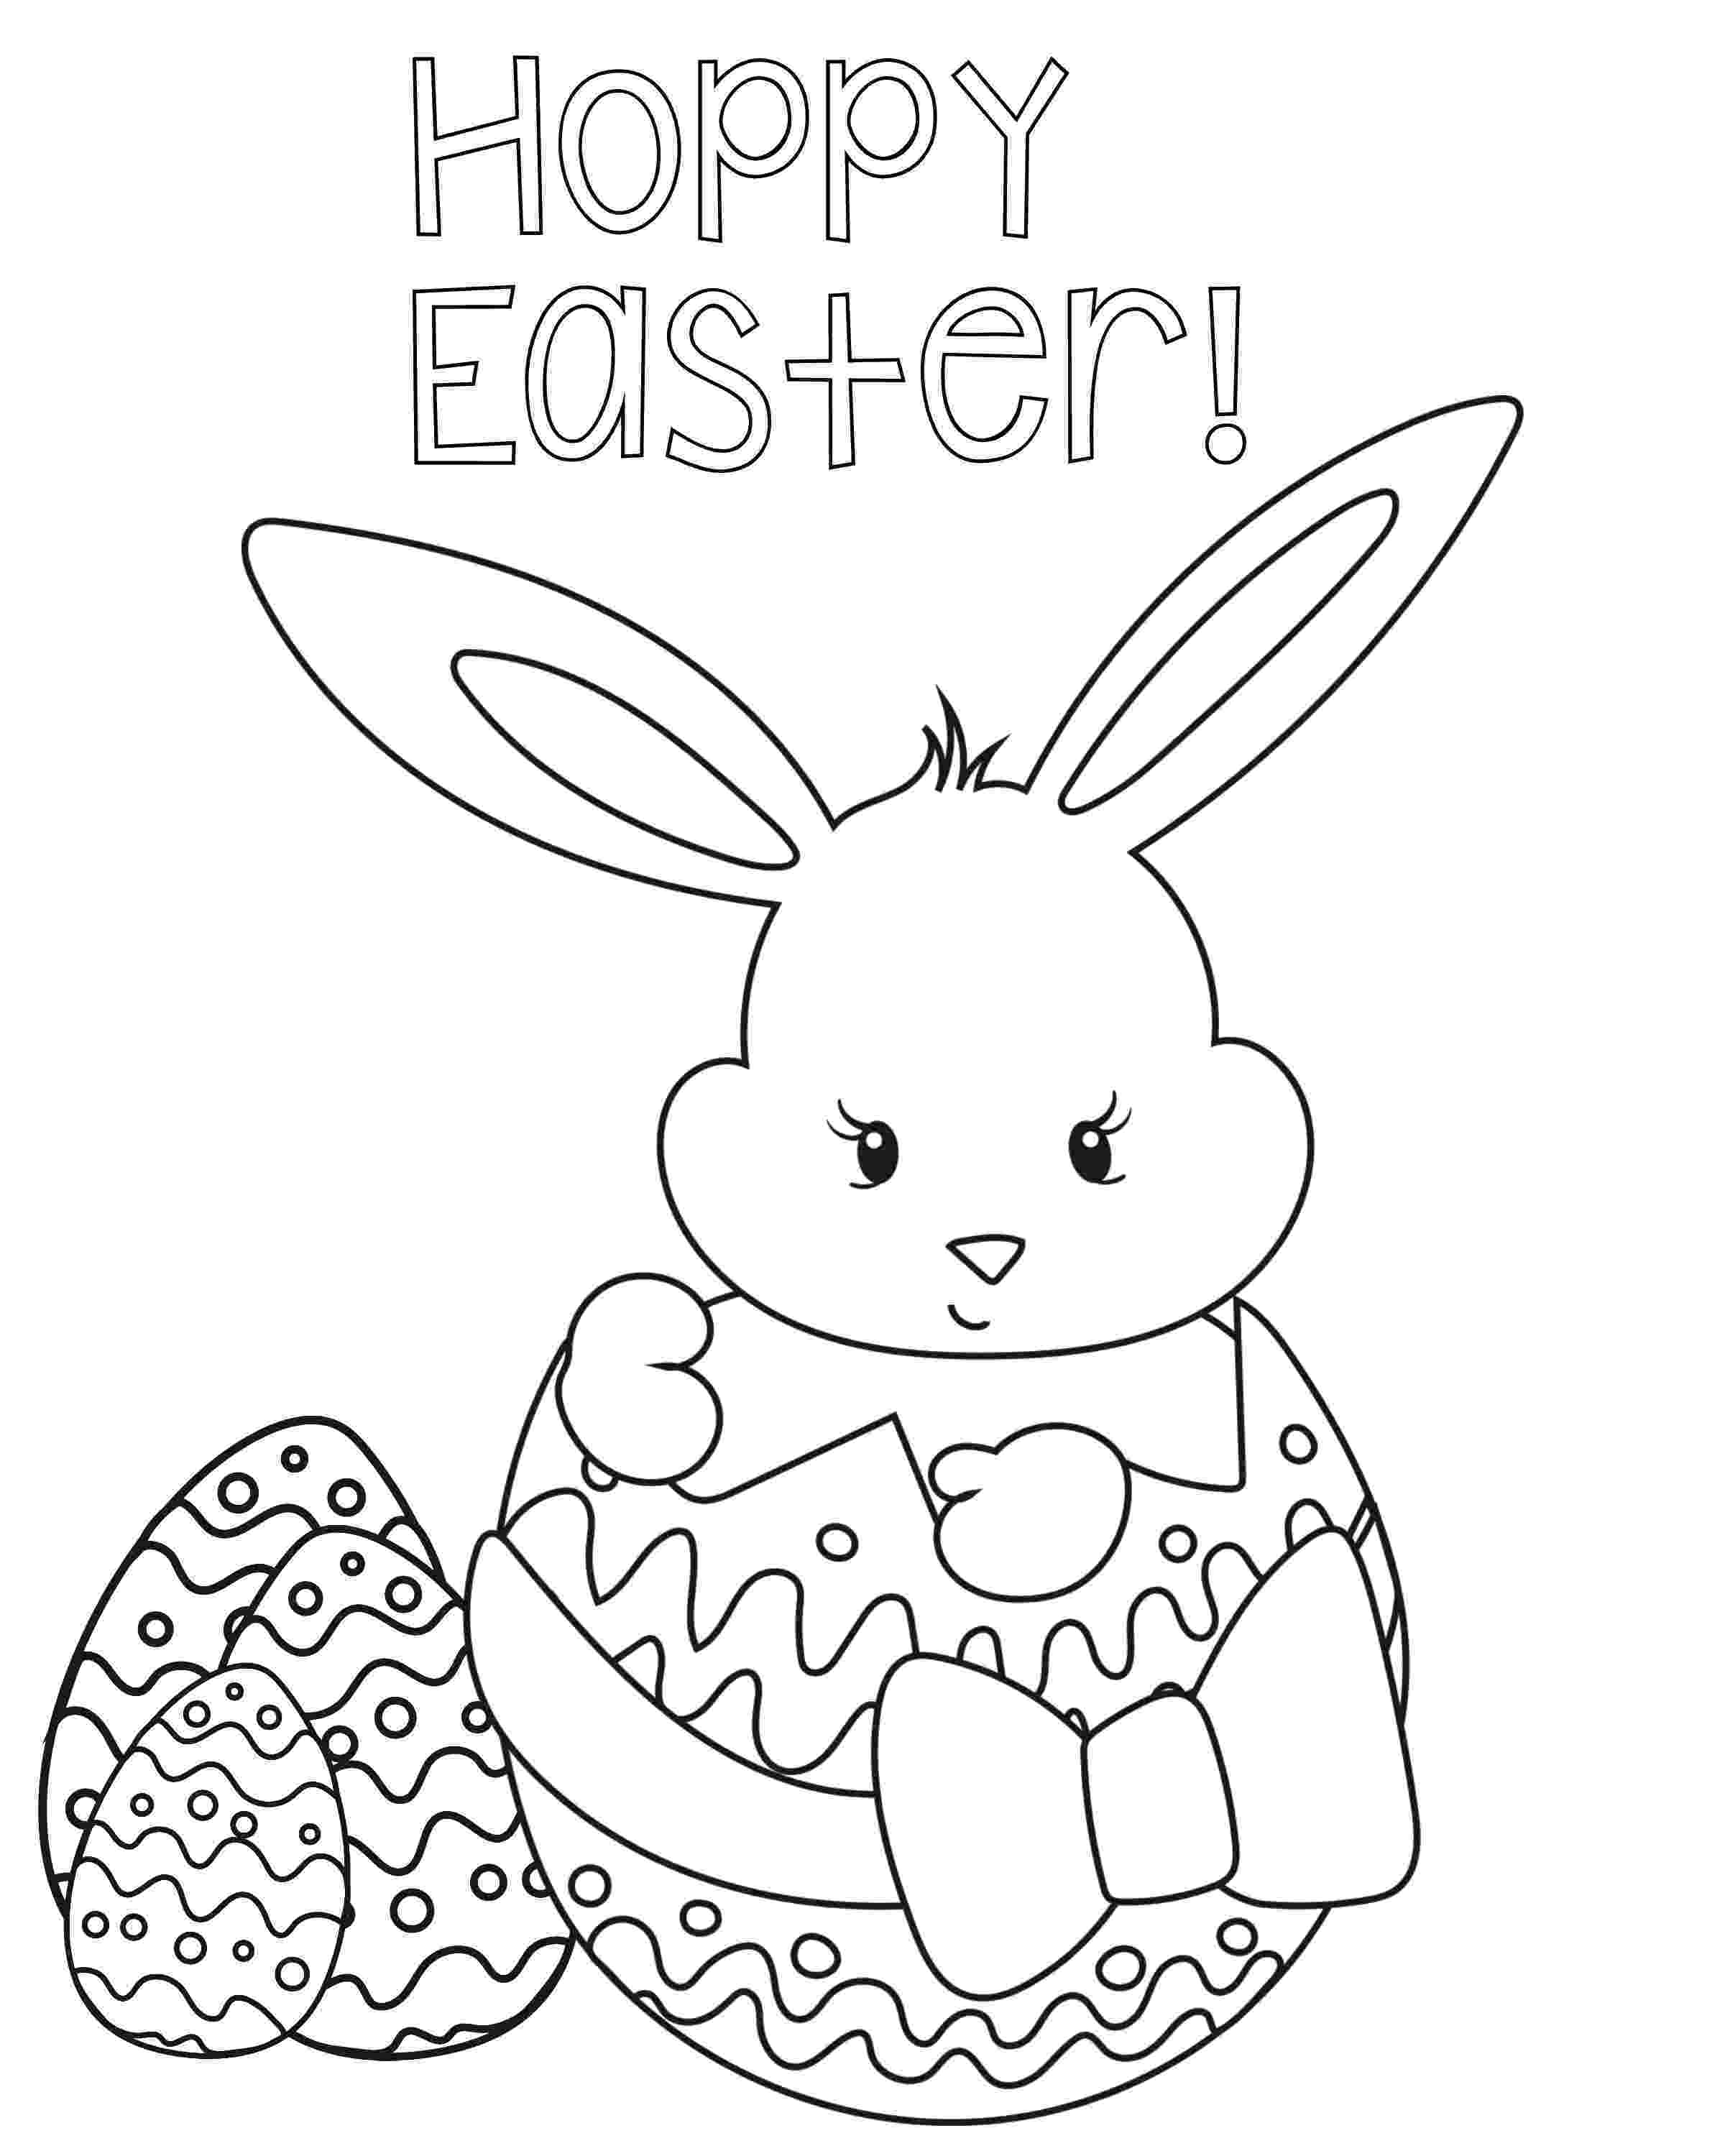 easter coloring sheets free printable happy easter coloring pages best coloring pages for kids coloring sheets easter printable free